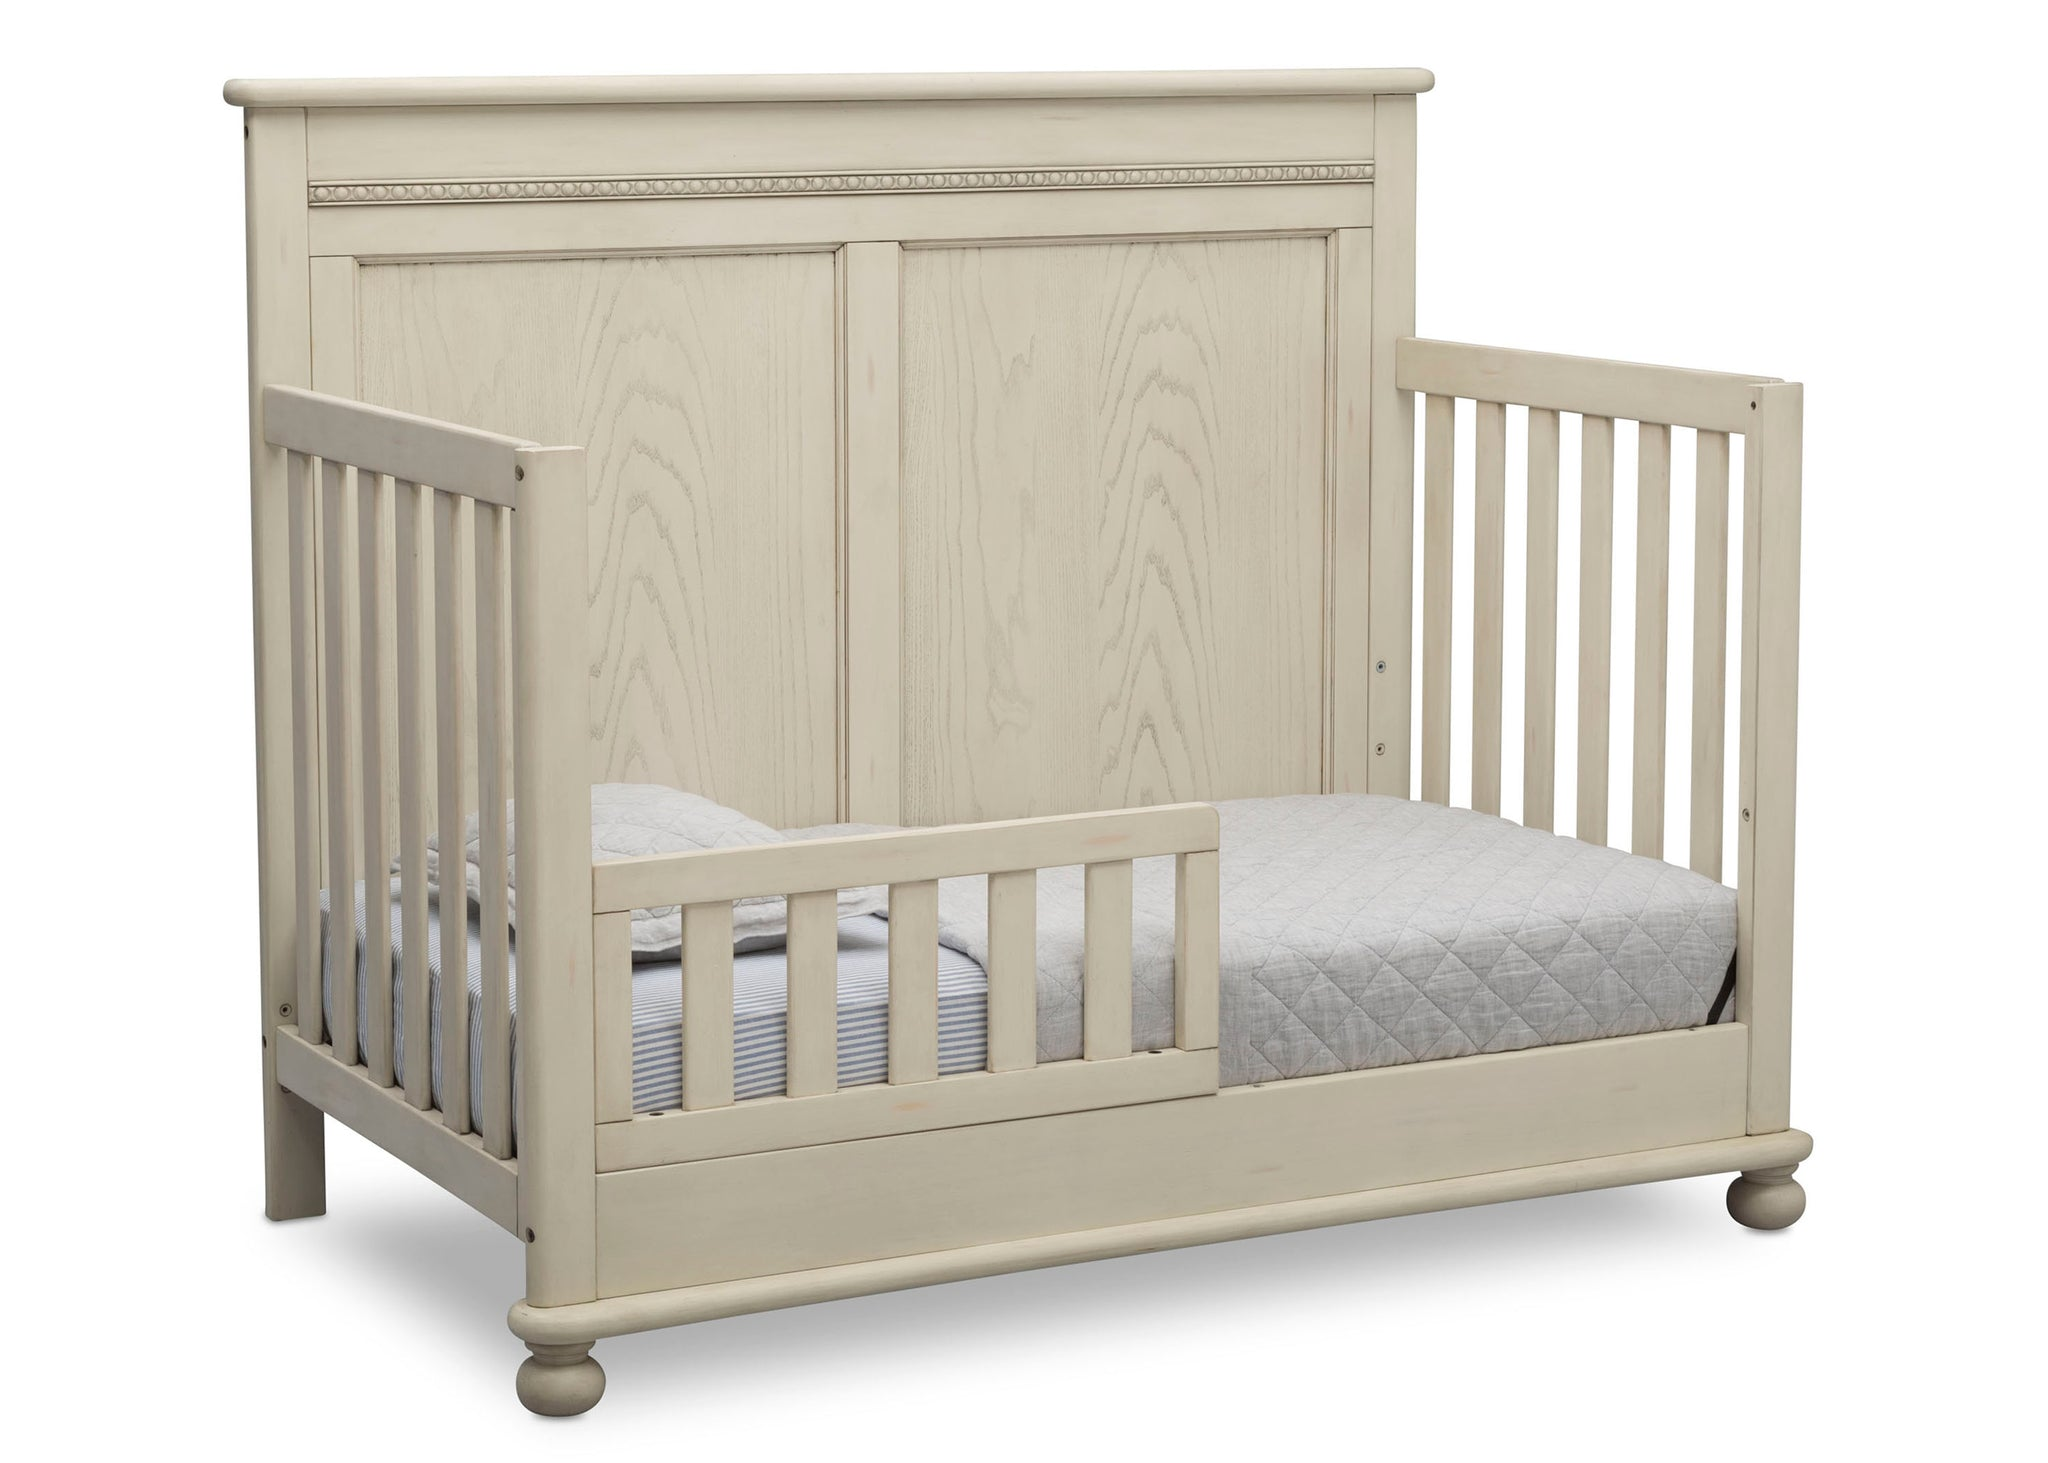 Delta Children Antique White (122) Fontana 4-in-1 Convertible Crib (W337350) Toddler Bed Conversion, a4a